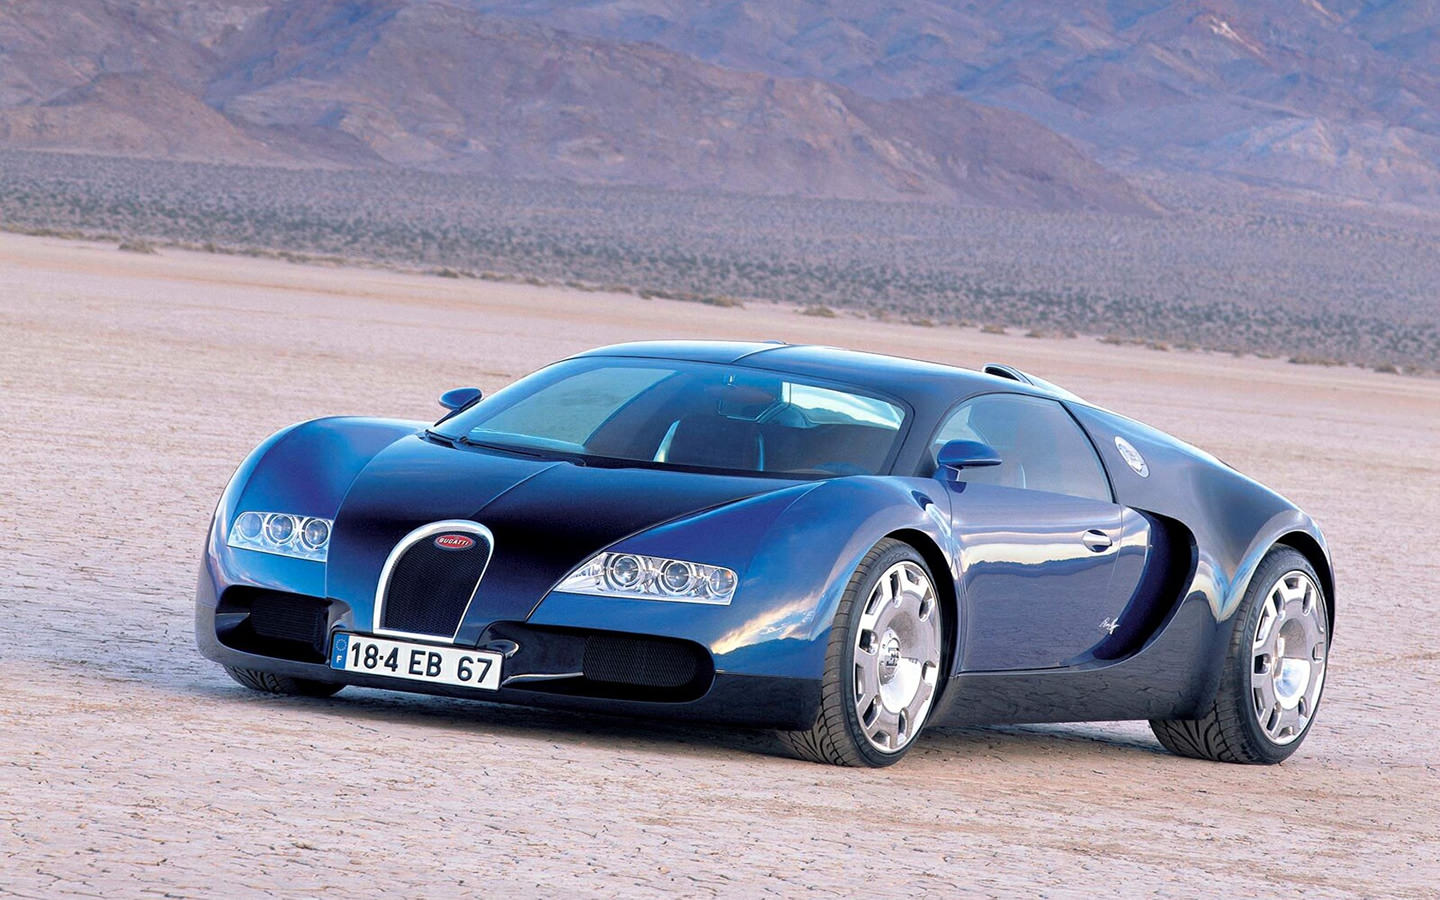 Wallpapers Car Wallpapers Bugatti Wallpapers Bugatti Car Wallpaper